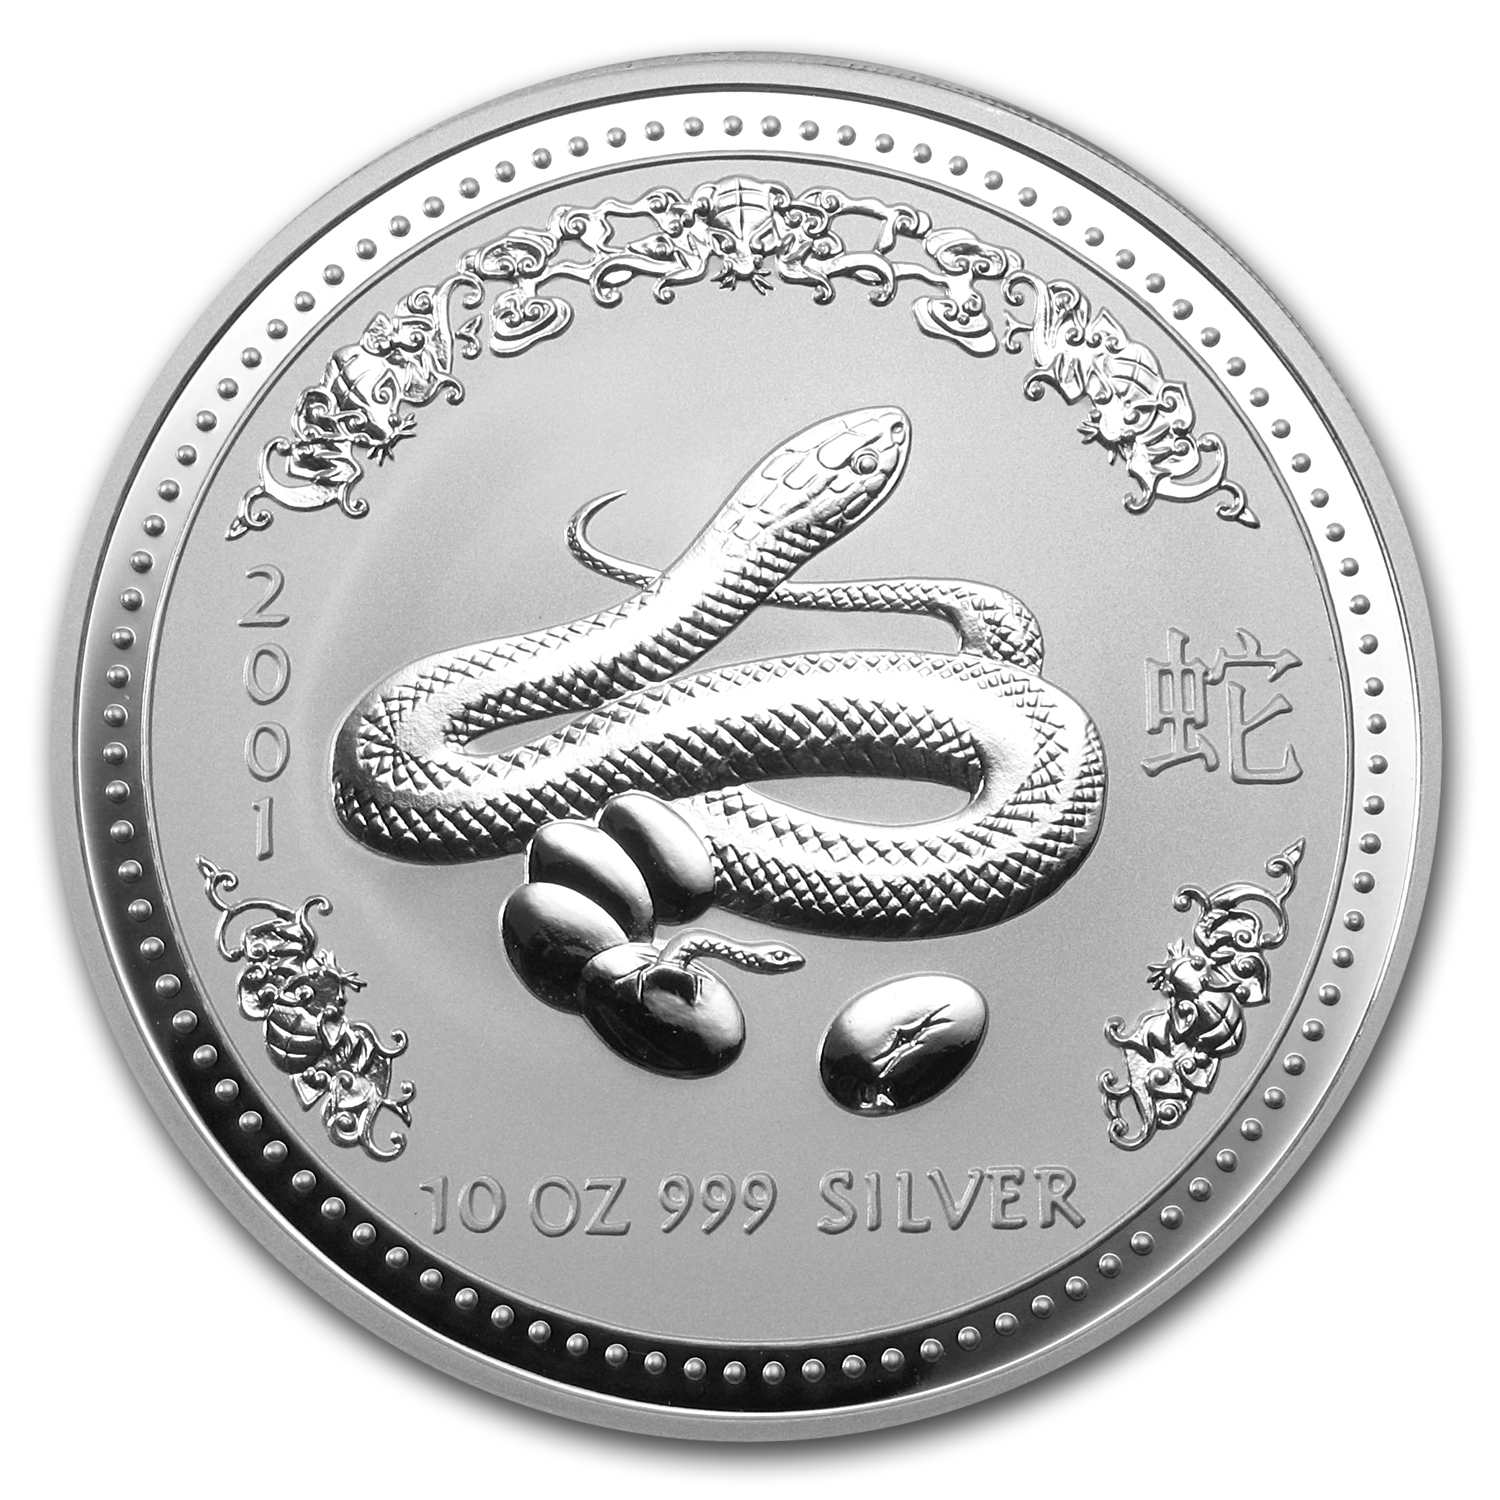 2001 10 oz Silver Lunar Year of the Snake (Series I)